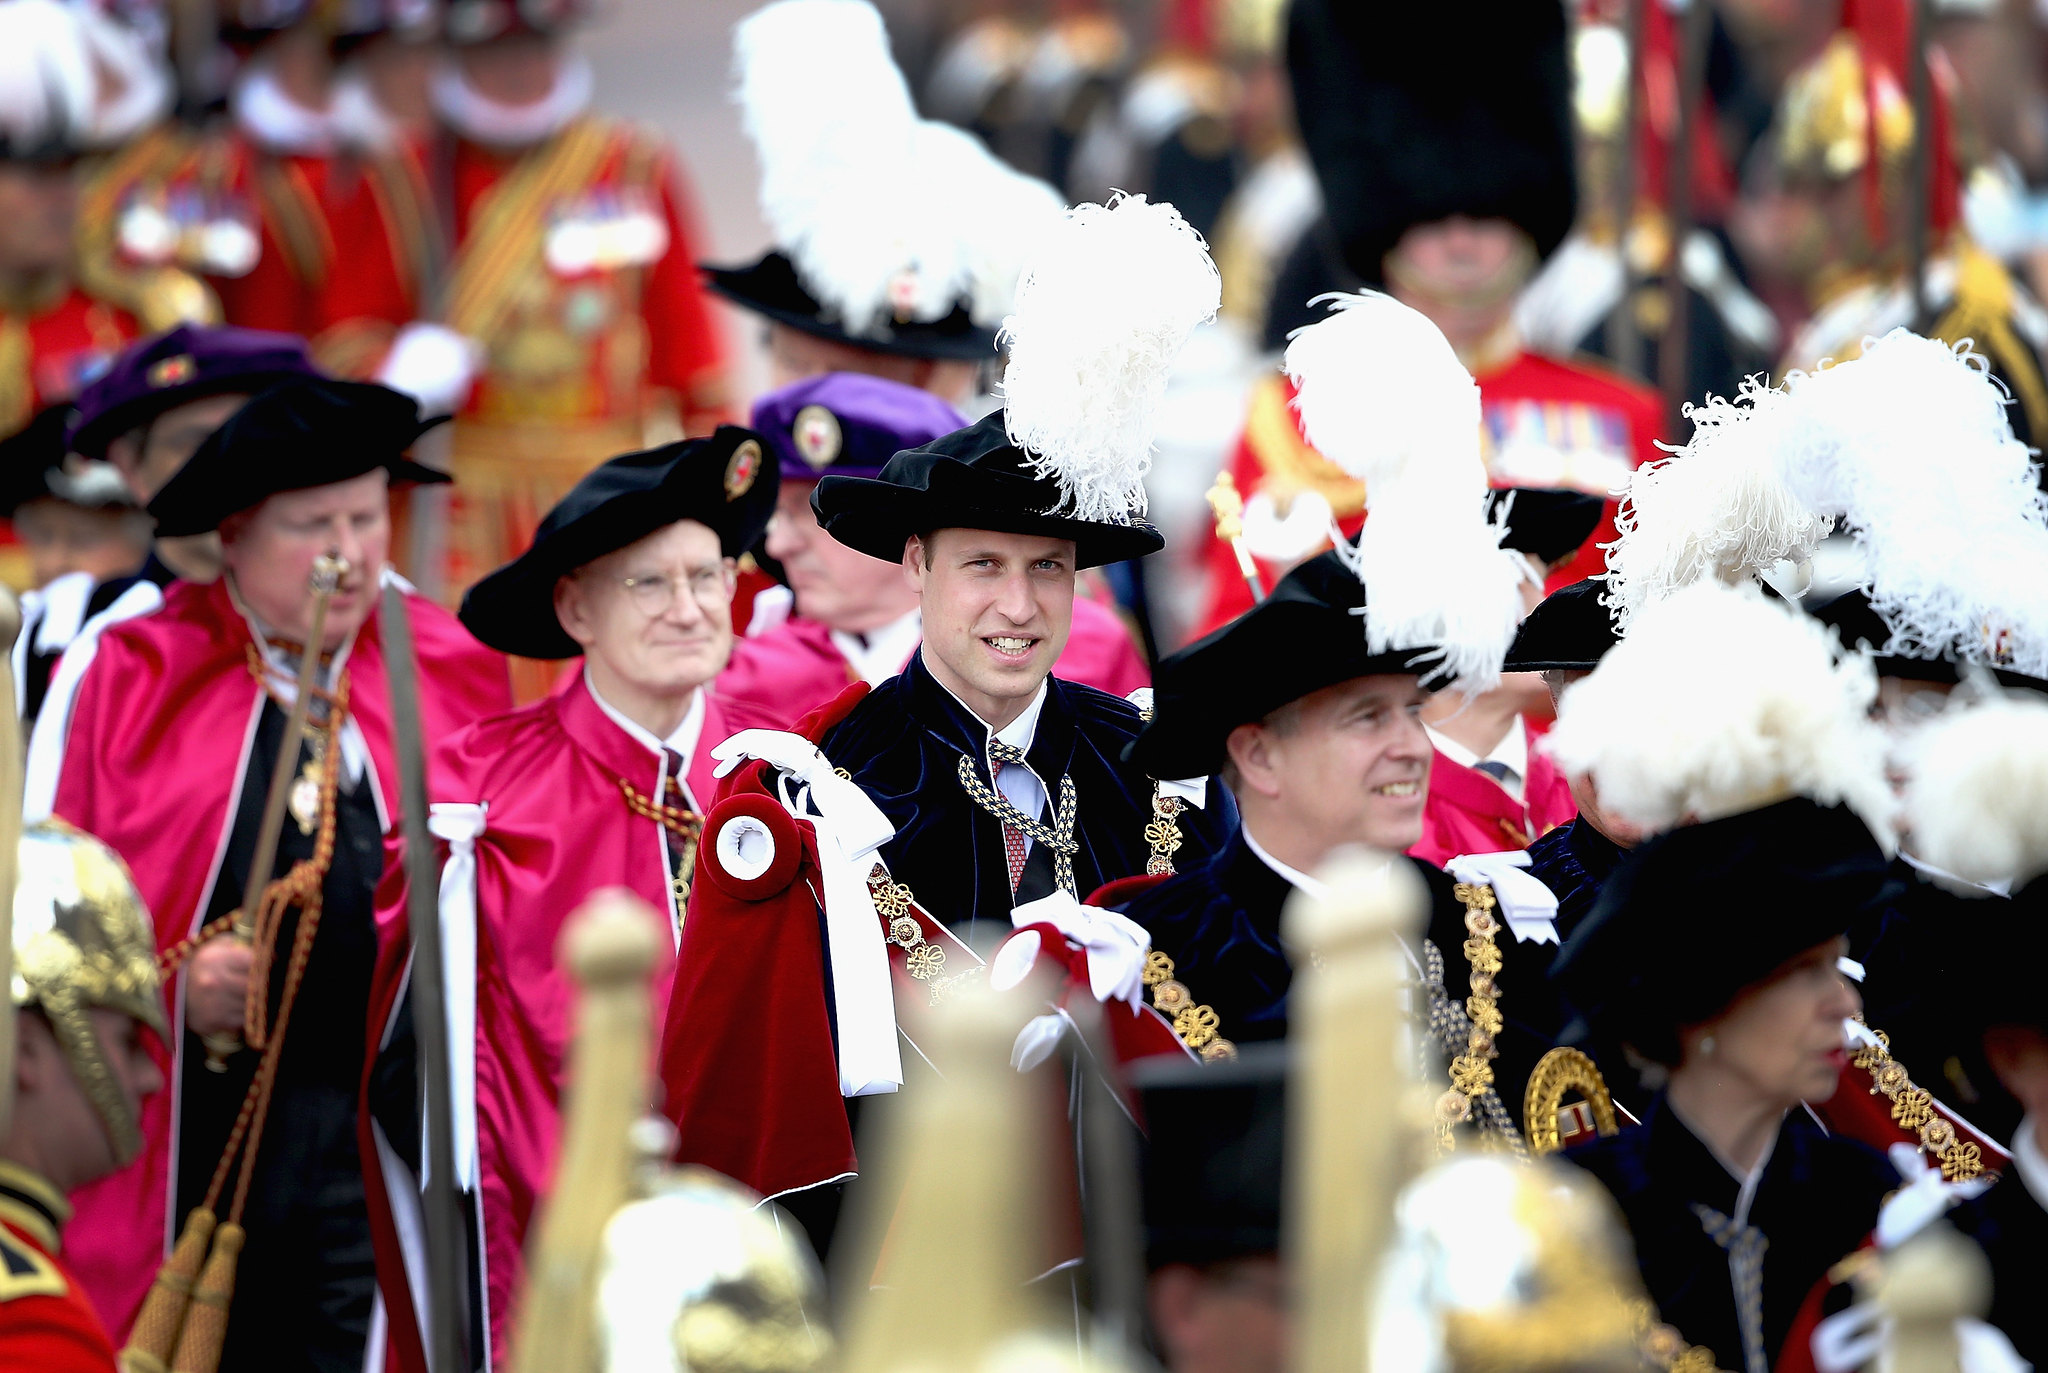 The Duke of Cambridge (centre) and the Duke of York (centre right) attend the annual Order of the Garter Service at St George's Chapel, Windsor Castle.